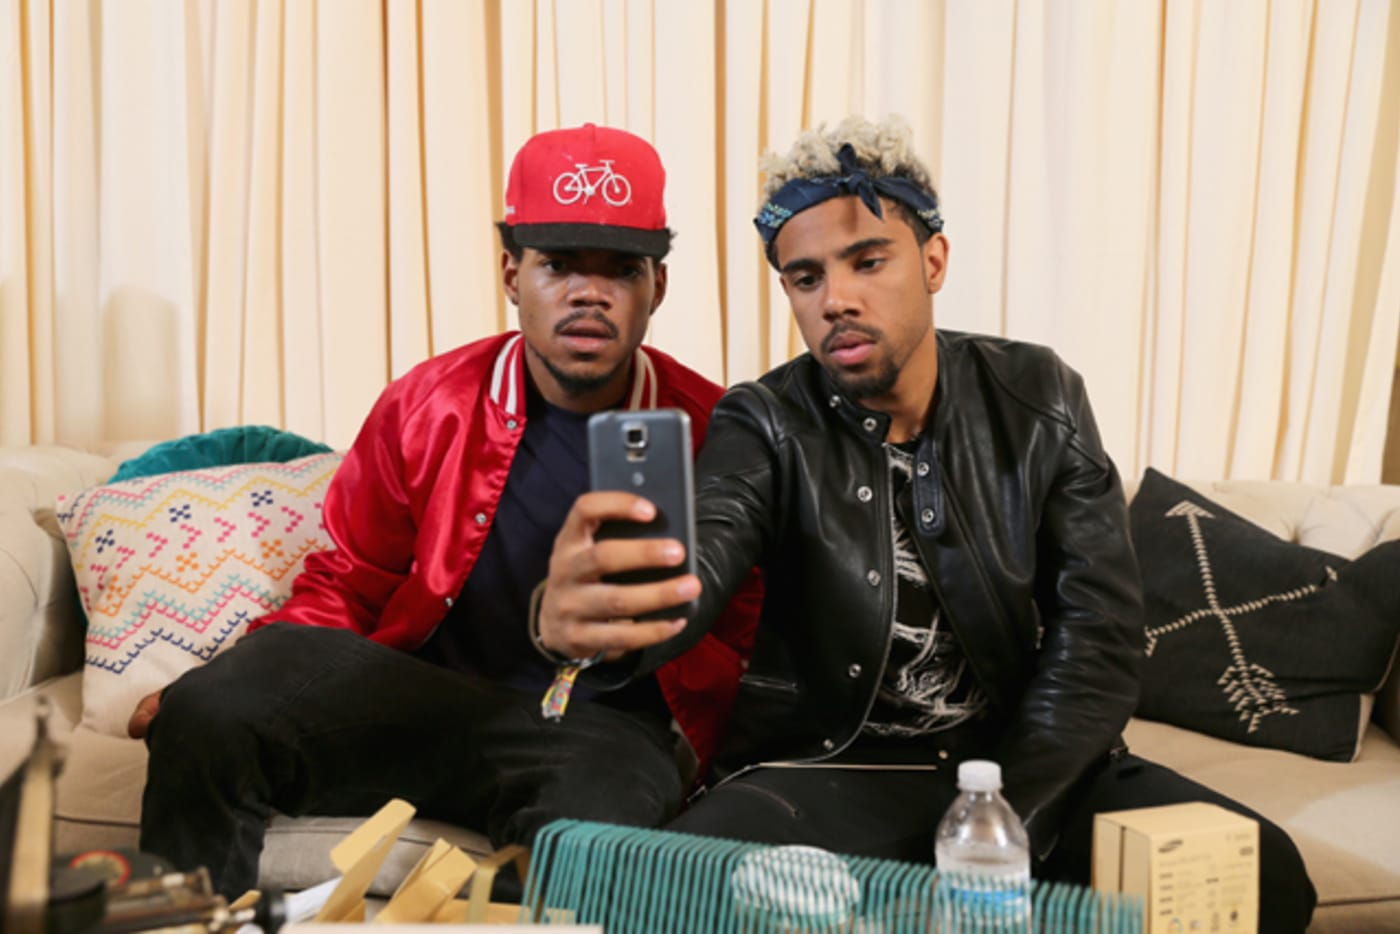 Chance the Rapper and Vic Mensa, Samsung Galaxy at Lollapalooza 2014